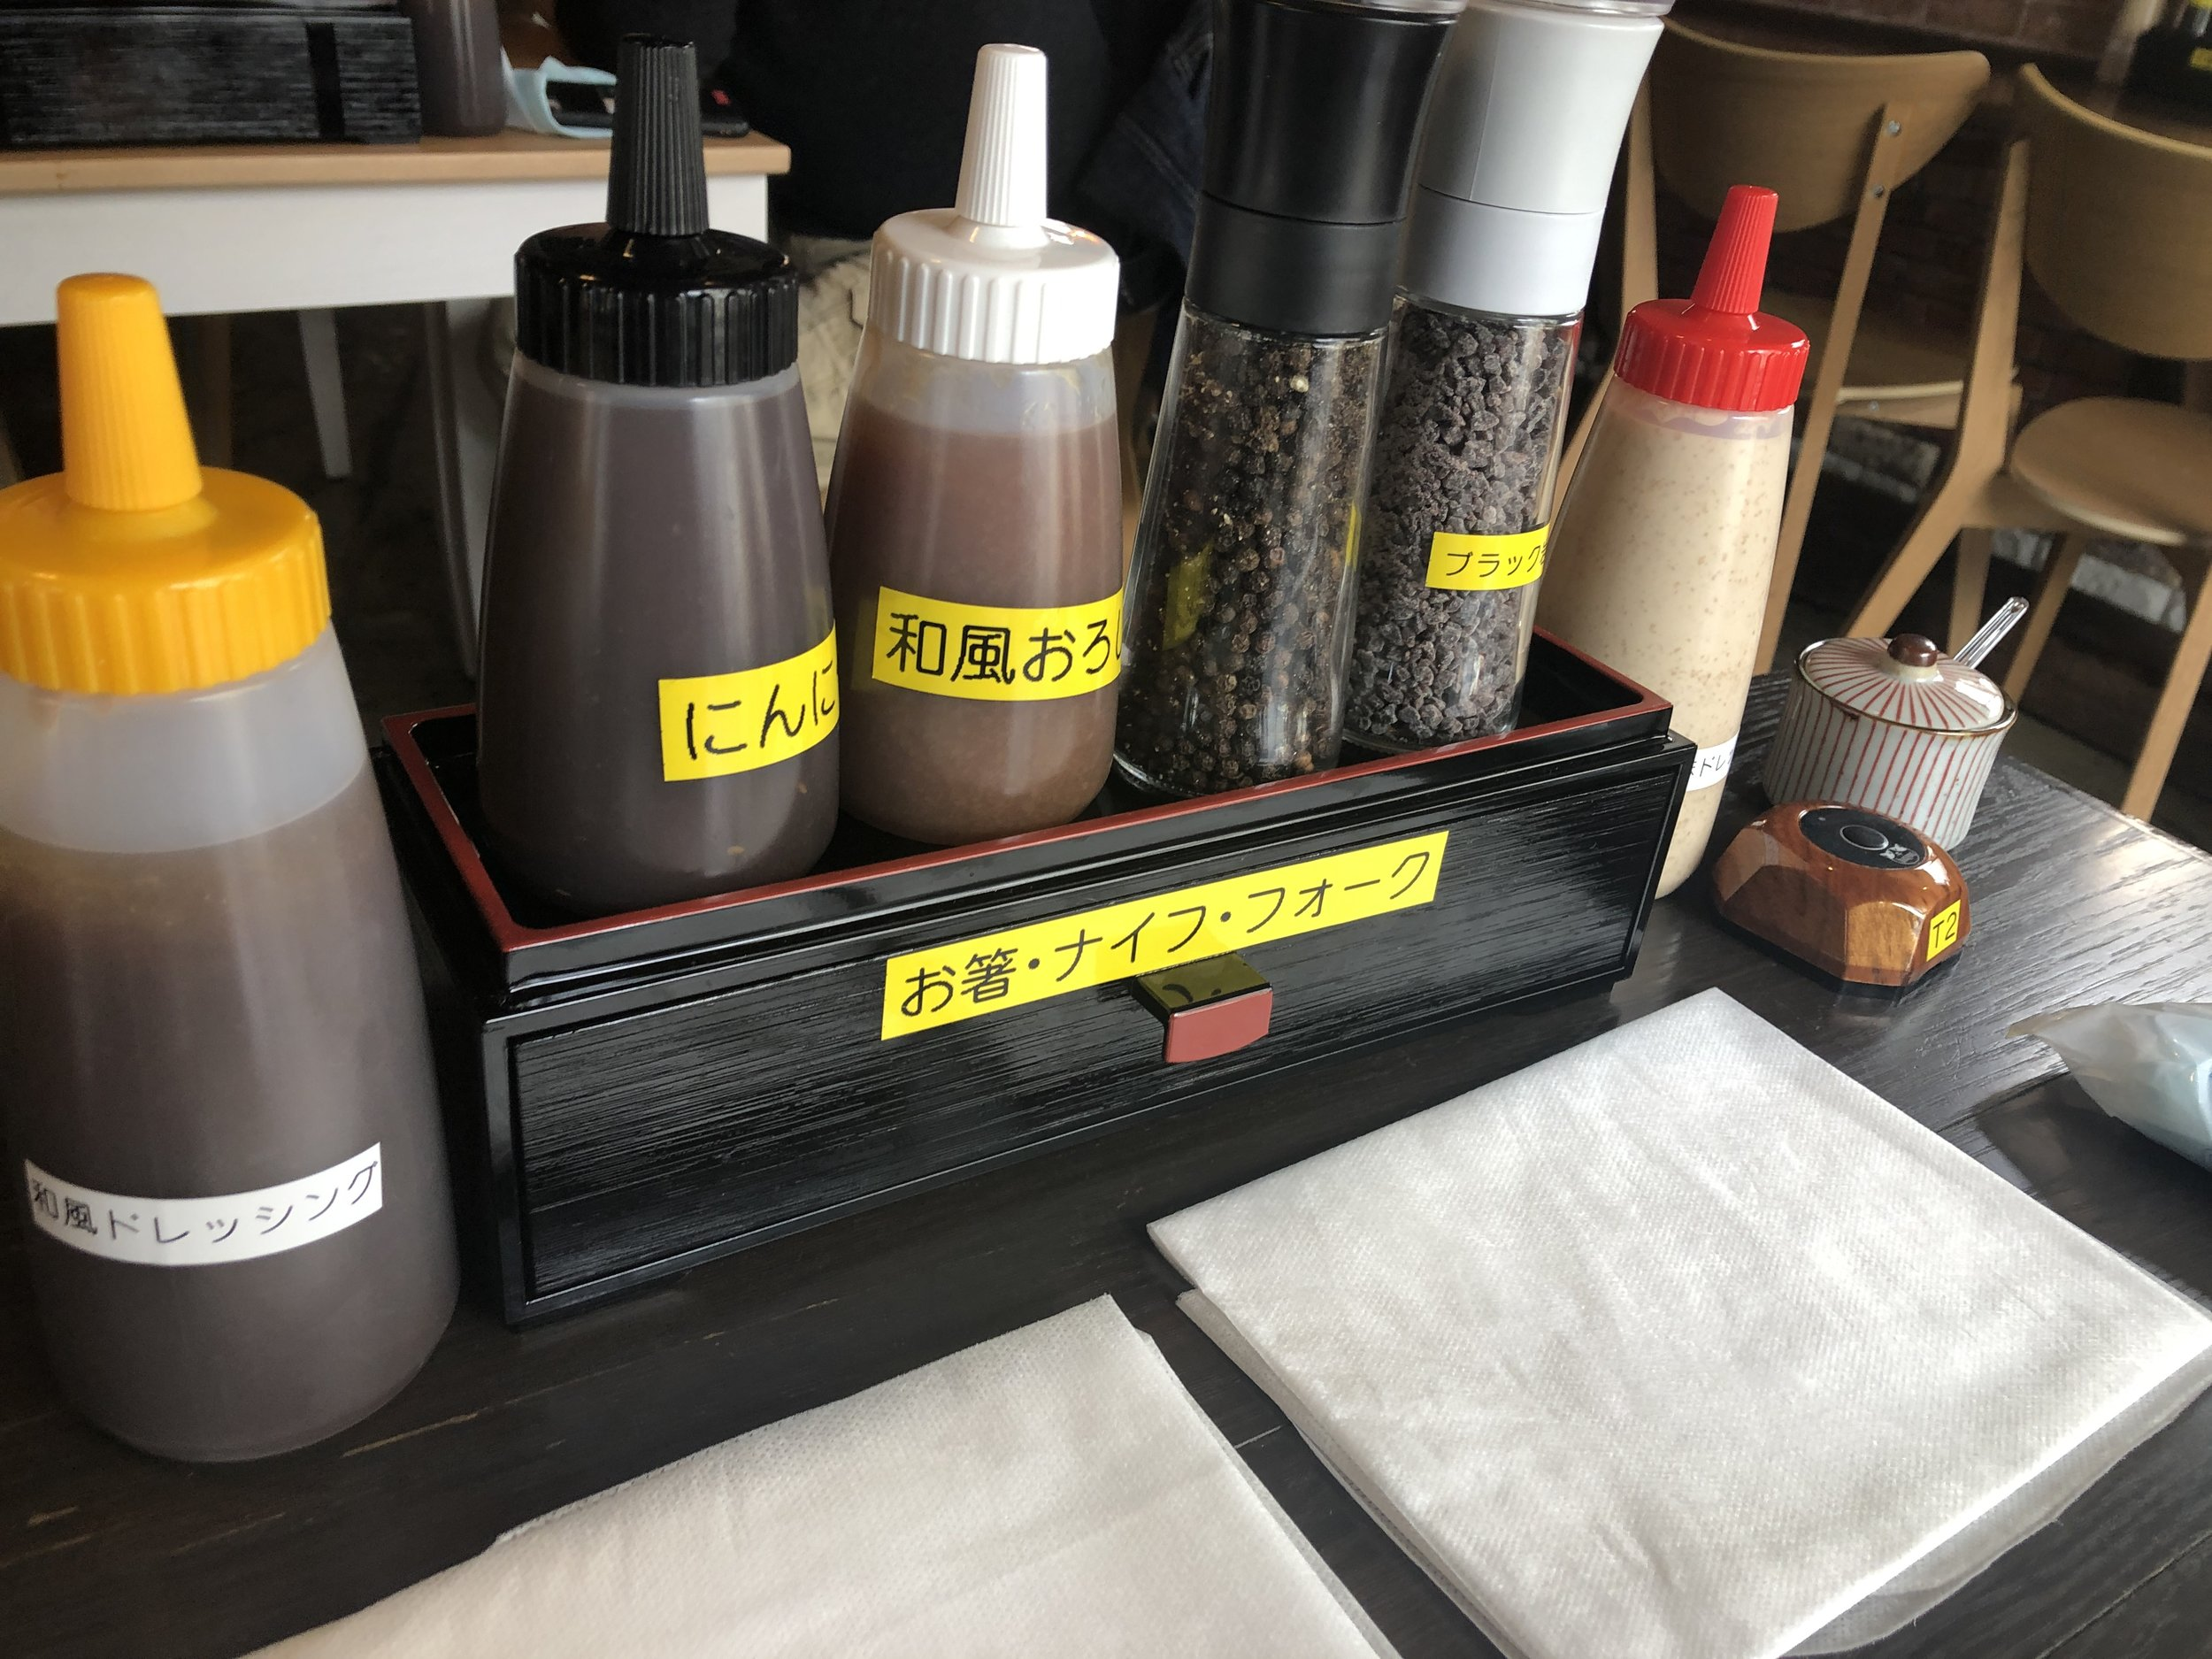 Dressing, steak sauces and salt & pepper